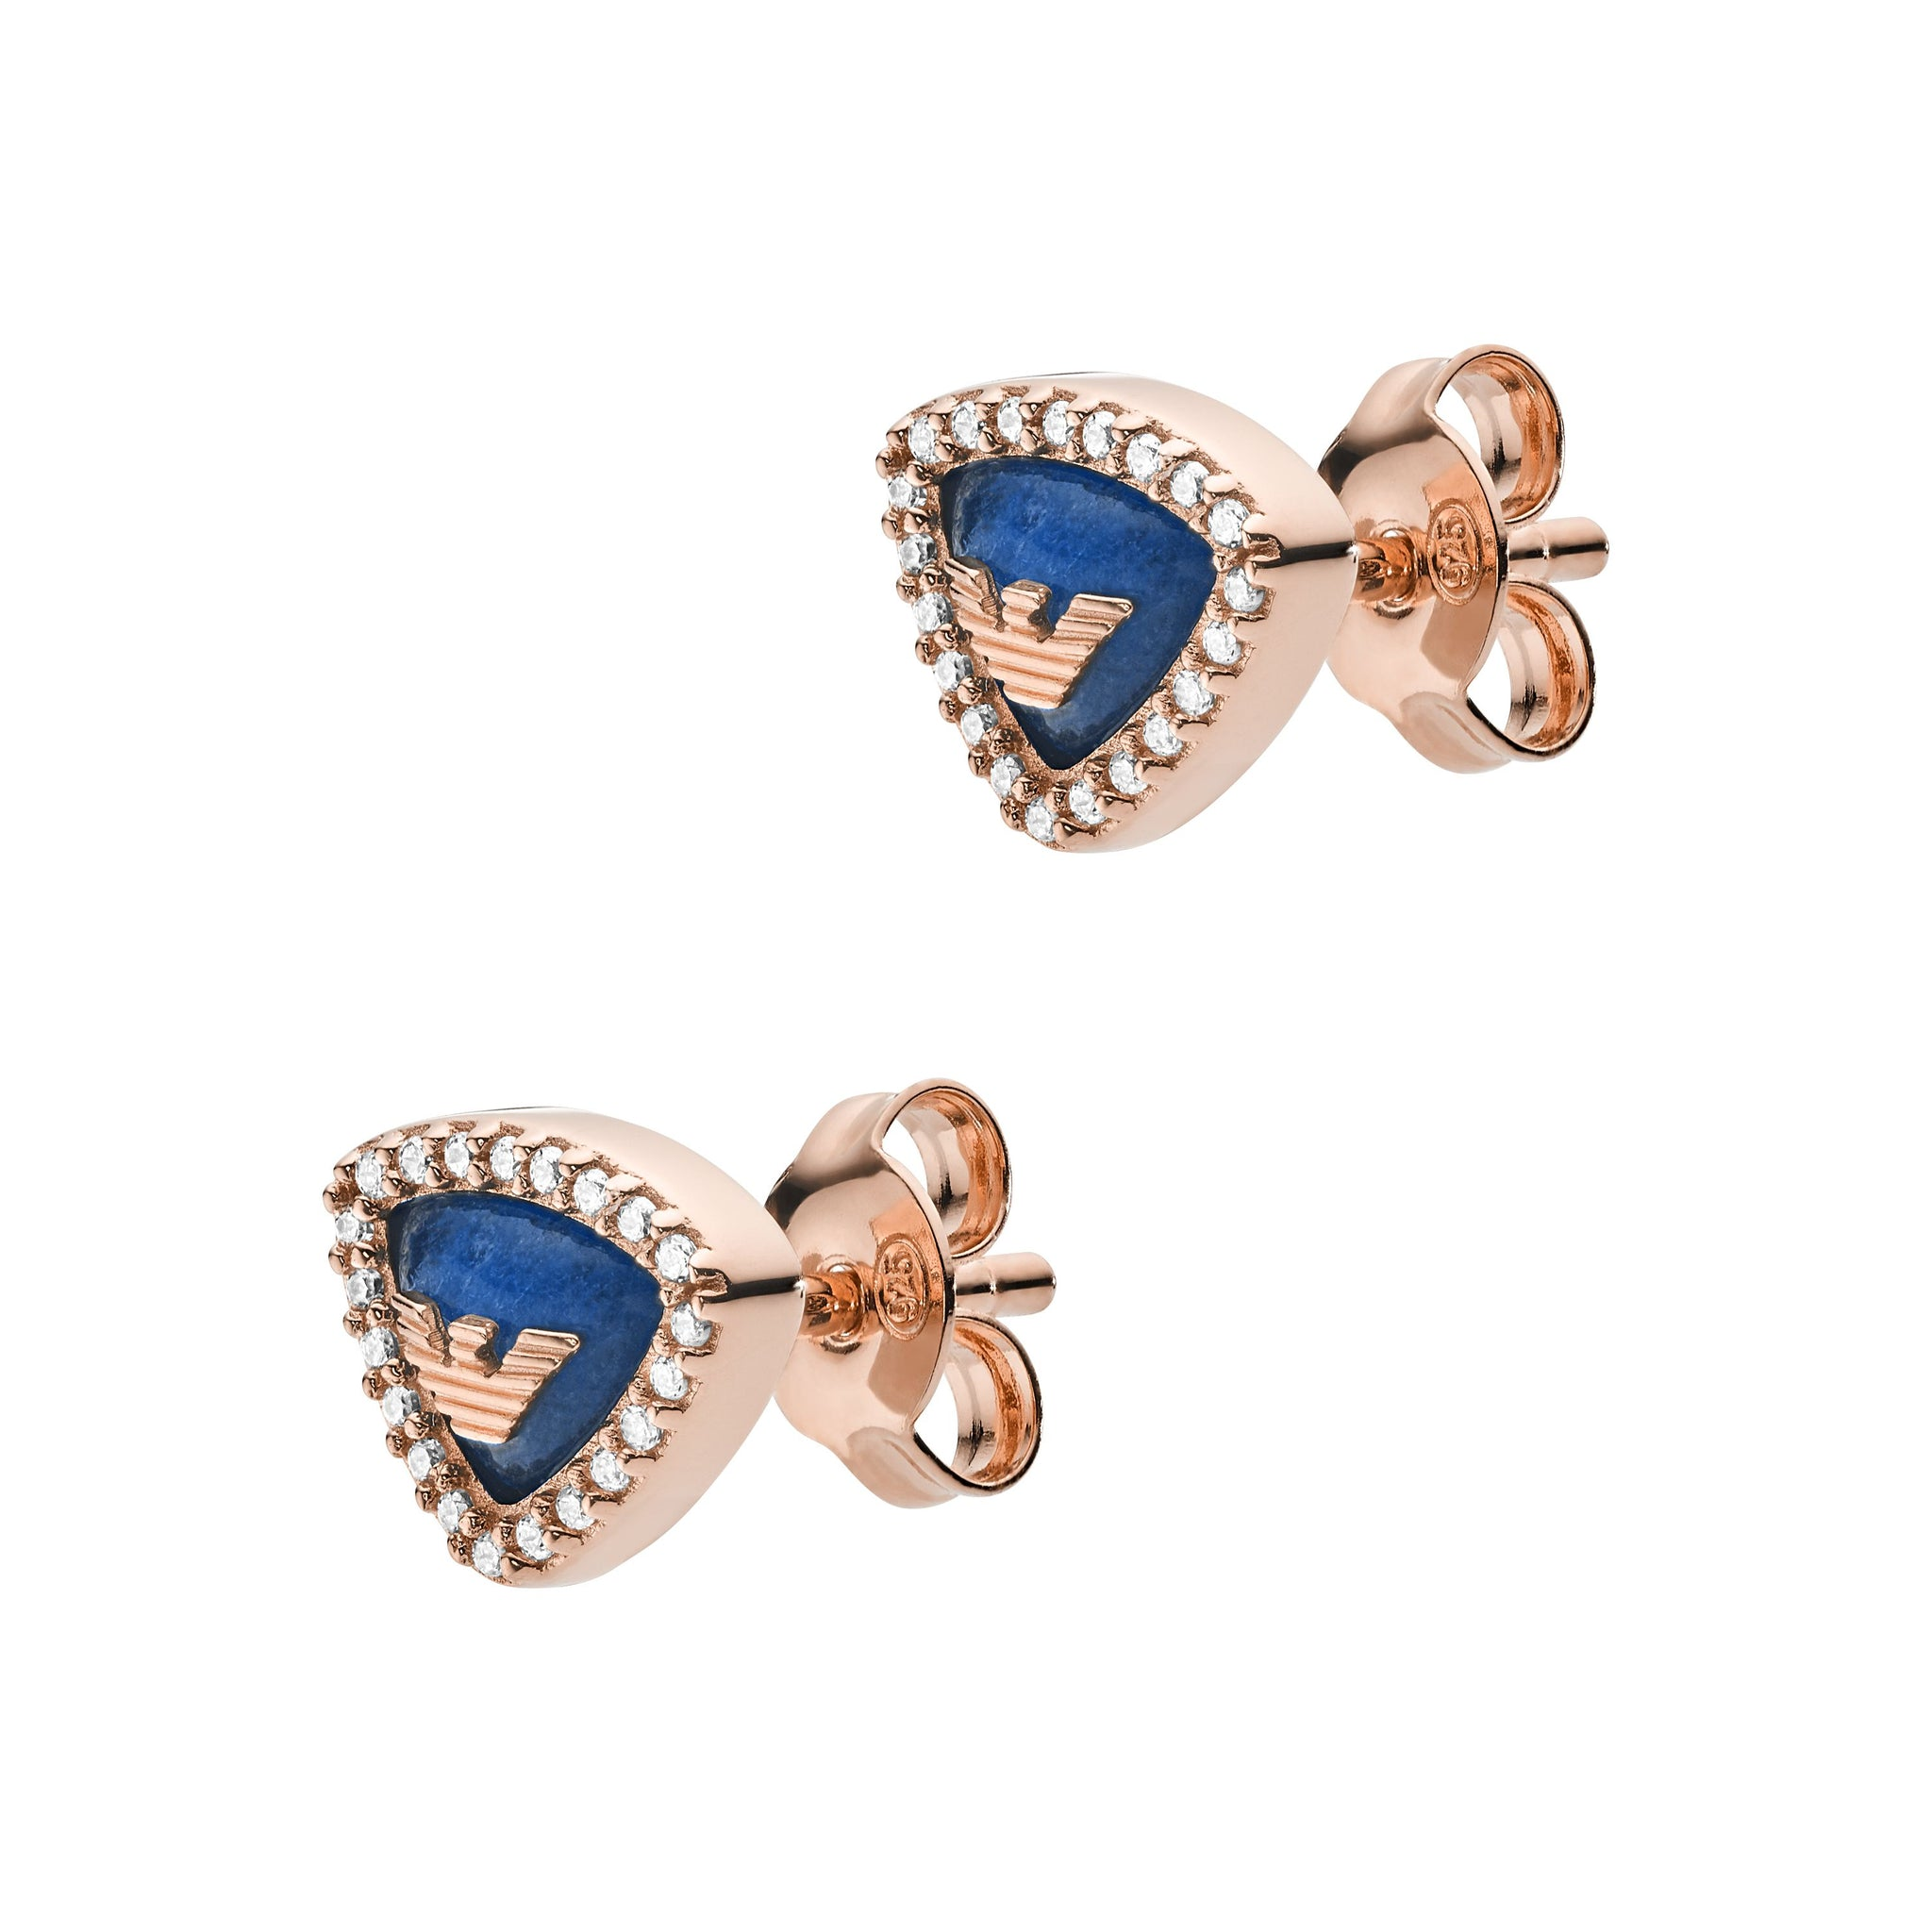 Emporio Armani EG3444221 Earrings with Rose Gold Plating